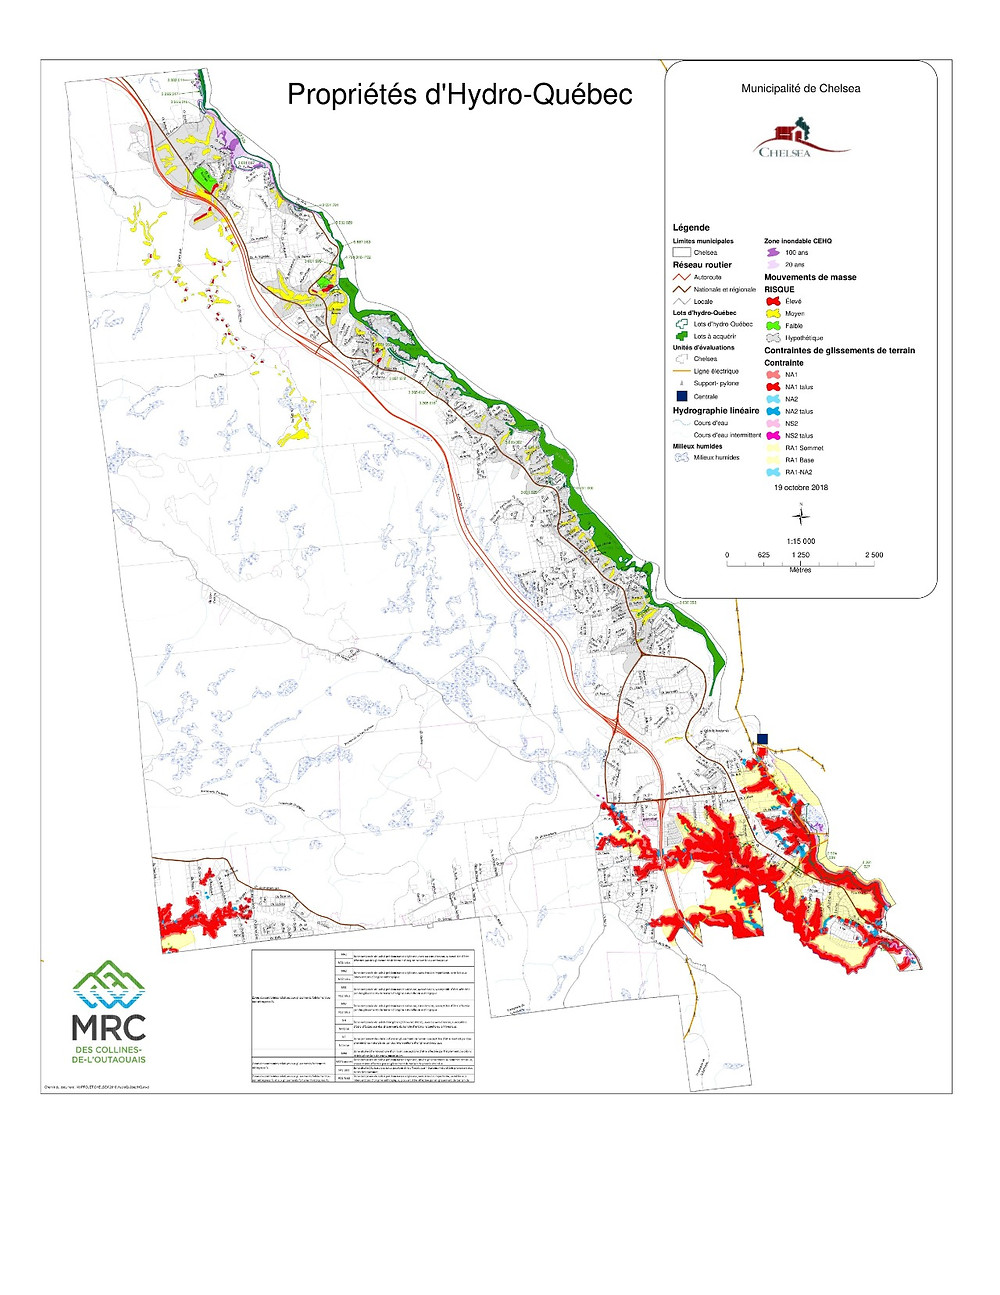 The Chelsea council unanimously voted to purchase 1.89 million square metres of Gatineau River waterfront property, highlighted in green on this map, from Hydro-Québec for $47,426 in January 2020. Image courtesy of the municipality of Chelsea